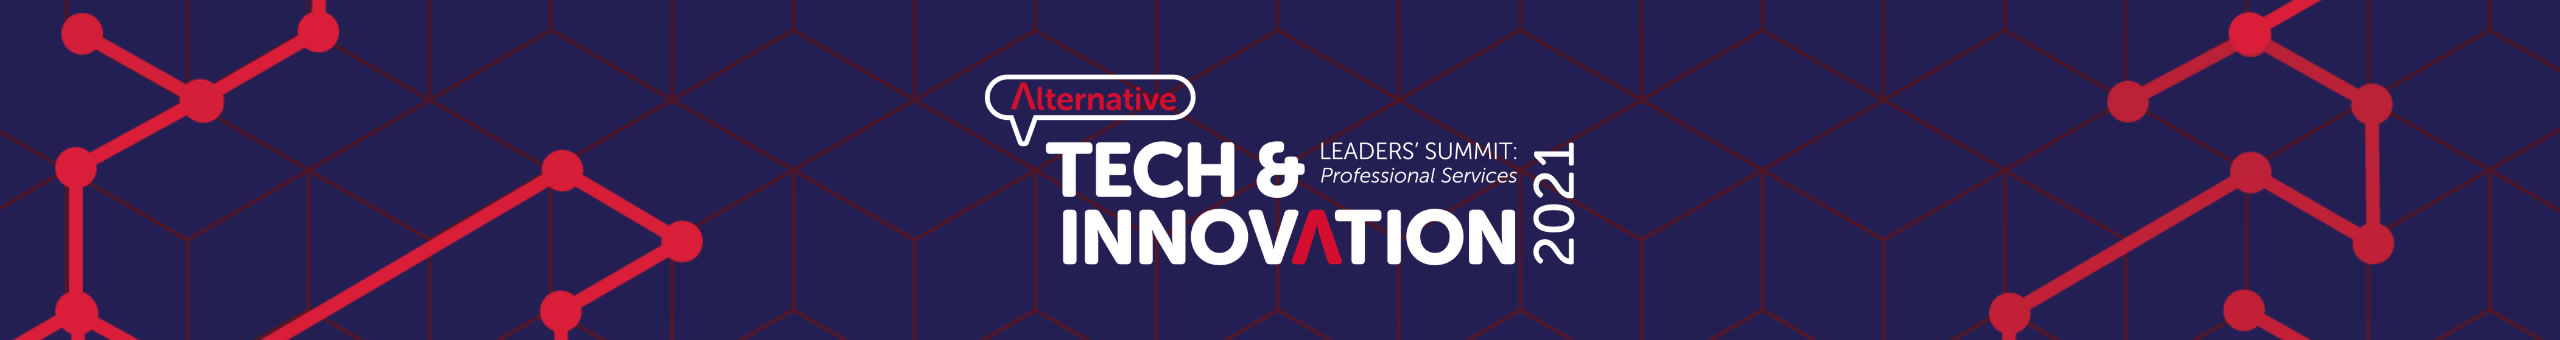 THE ALTERNATIVE TECH & INNOVATION LEADERS' SUMMIT: PROFESSIONAL SERVICES